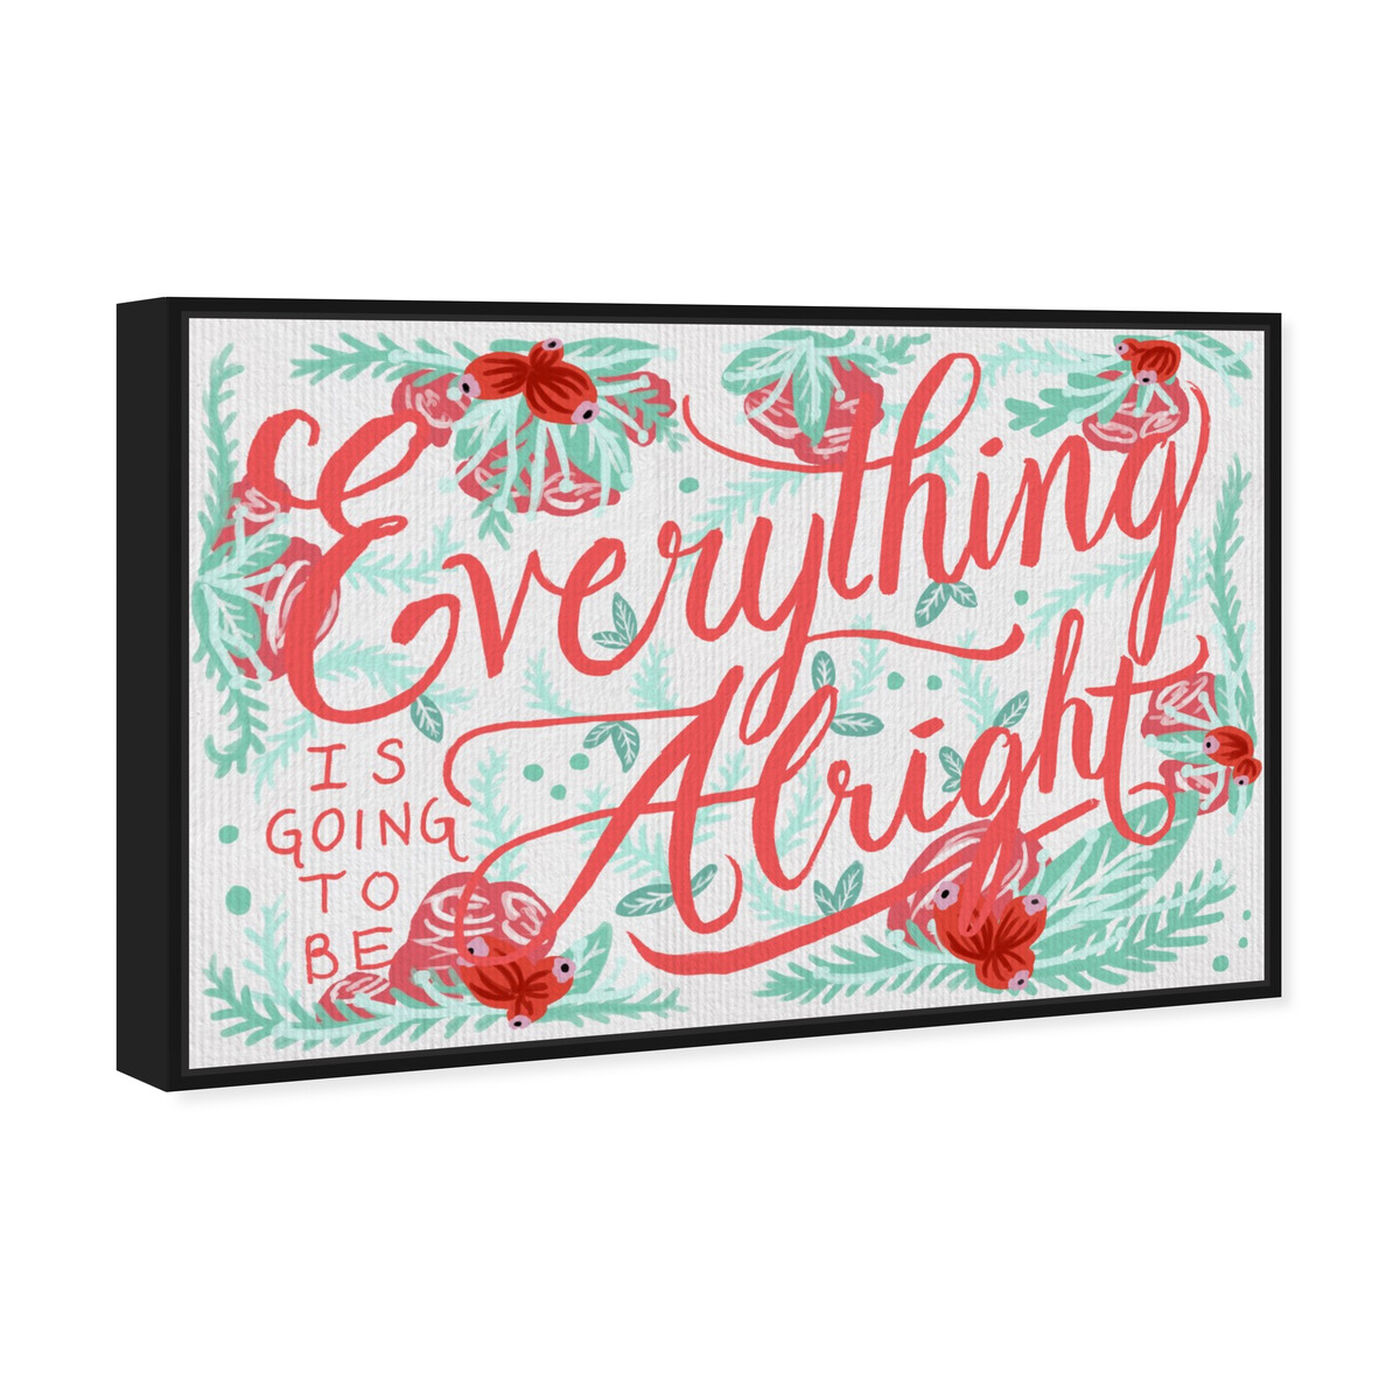 Angled view of Alright Minty I featuring typography and quotes and inspirational quotes and sayings art.